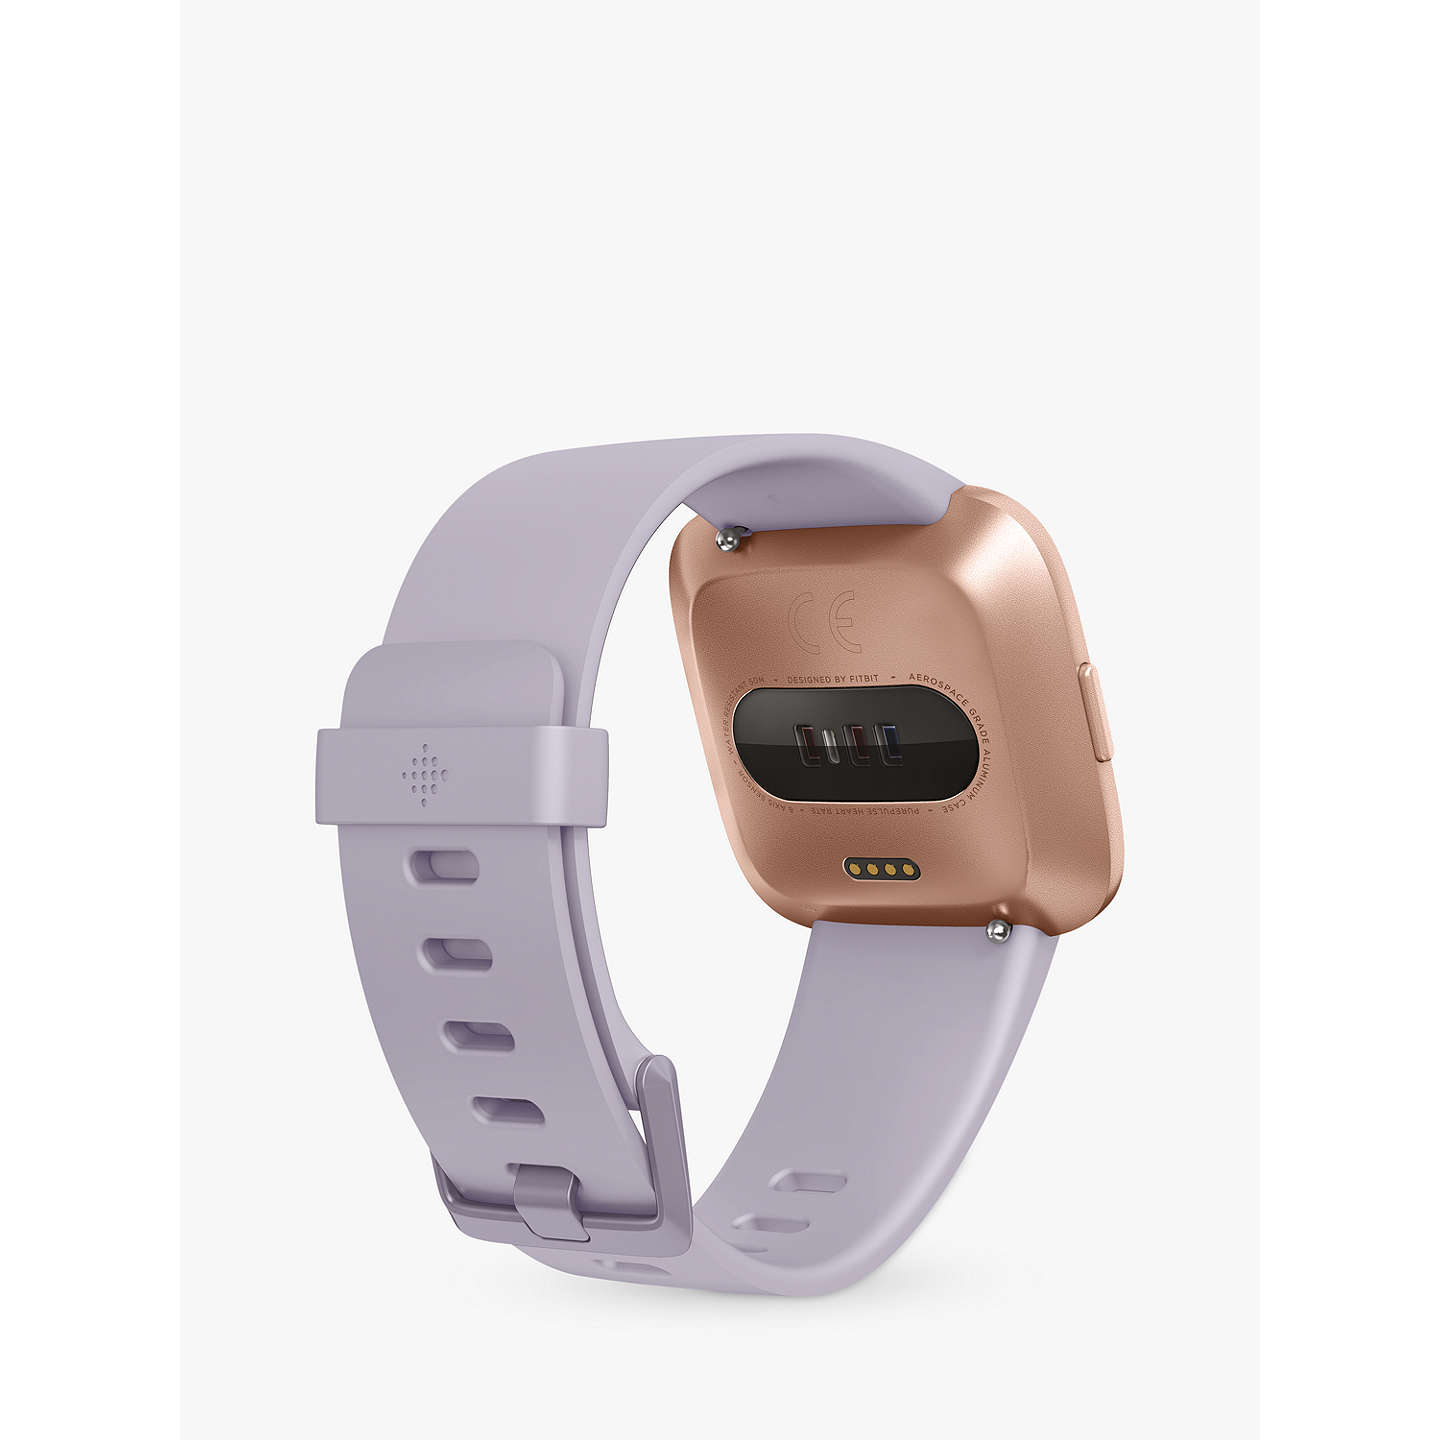 BuyFitbit Versa Smart Fitness Watch, Periwinkle/Rose Gold Online at johnlewis.com